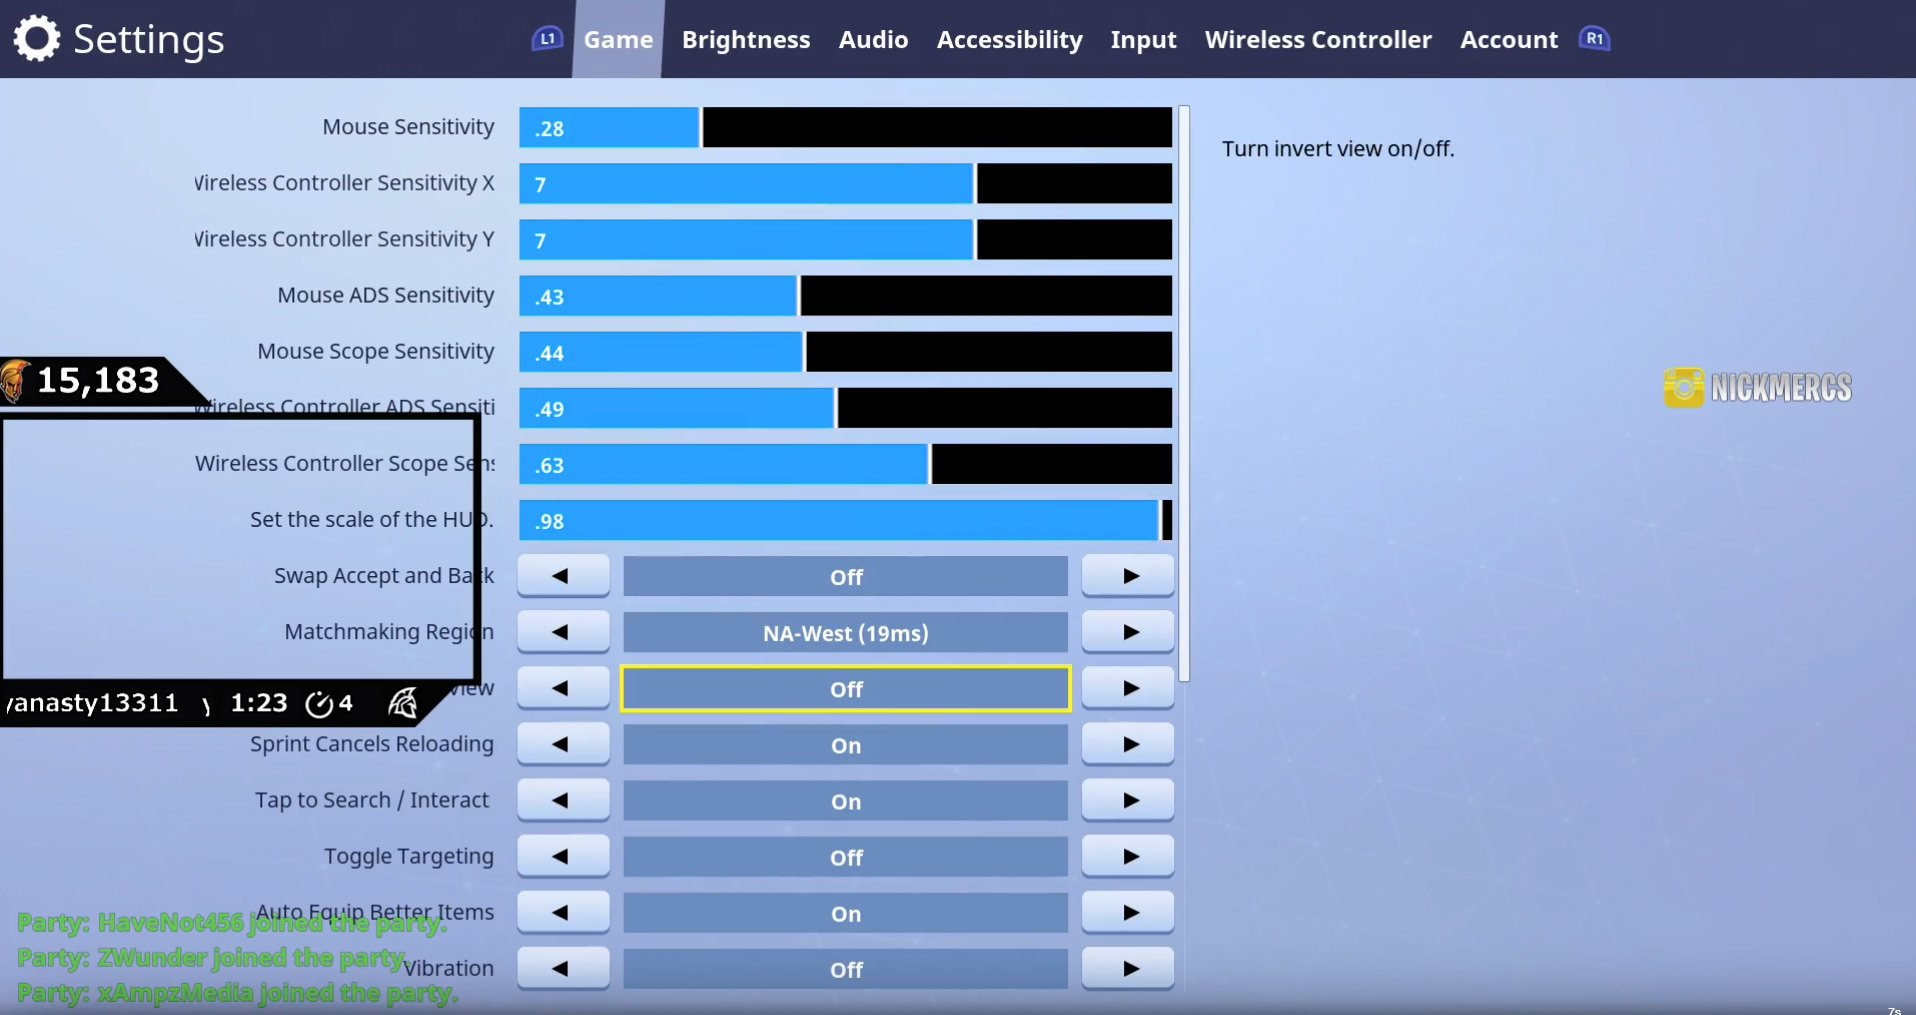 Svennoss Fortnite Settings Keybinds 2019